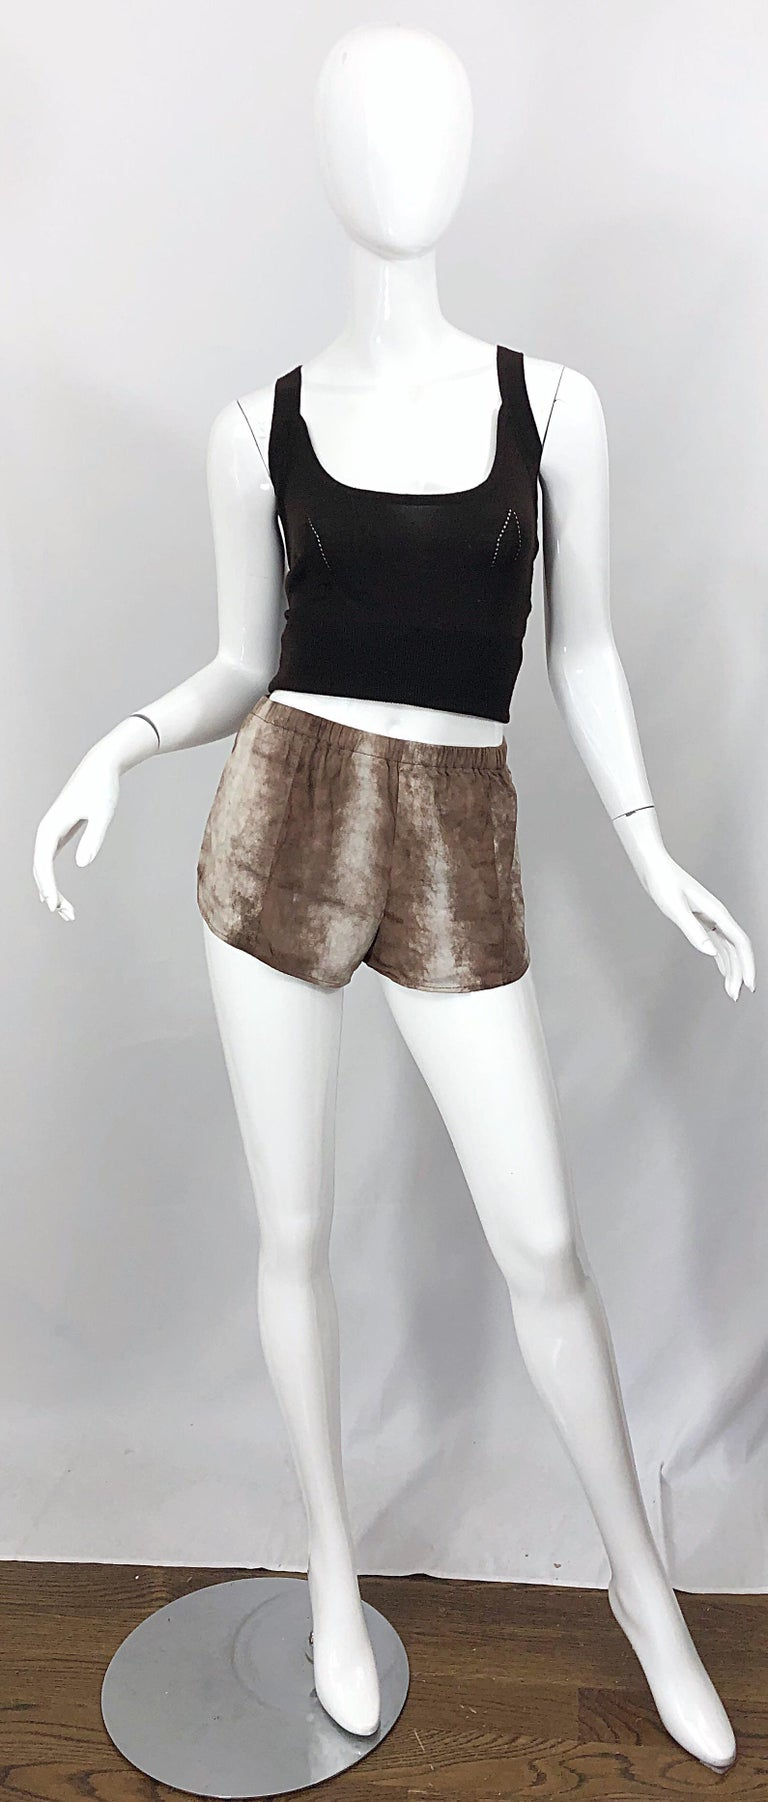 Amazing and collectible LOVE, MELODY early 80s sheepskin leather hot pants / shorts! Super soft ombre brown and taupe sheepskin leather with an elastic waistband that stretches to fit. Track style that is so on trend right now! The brown cashmere